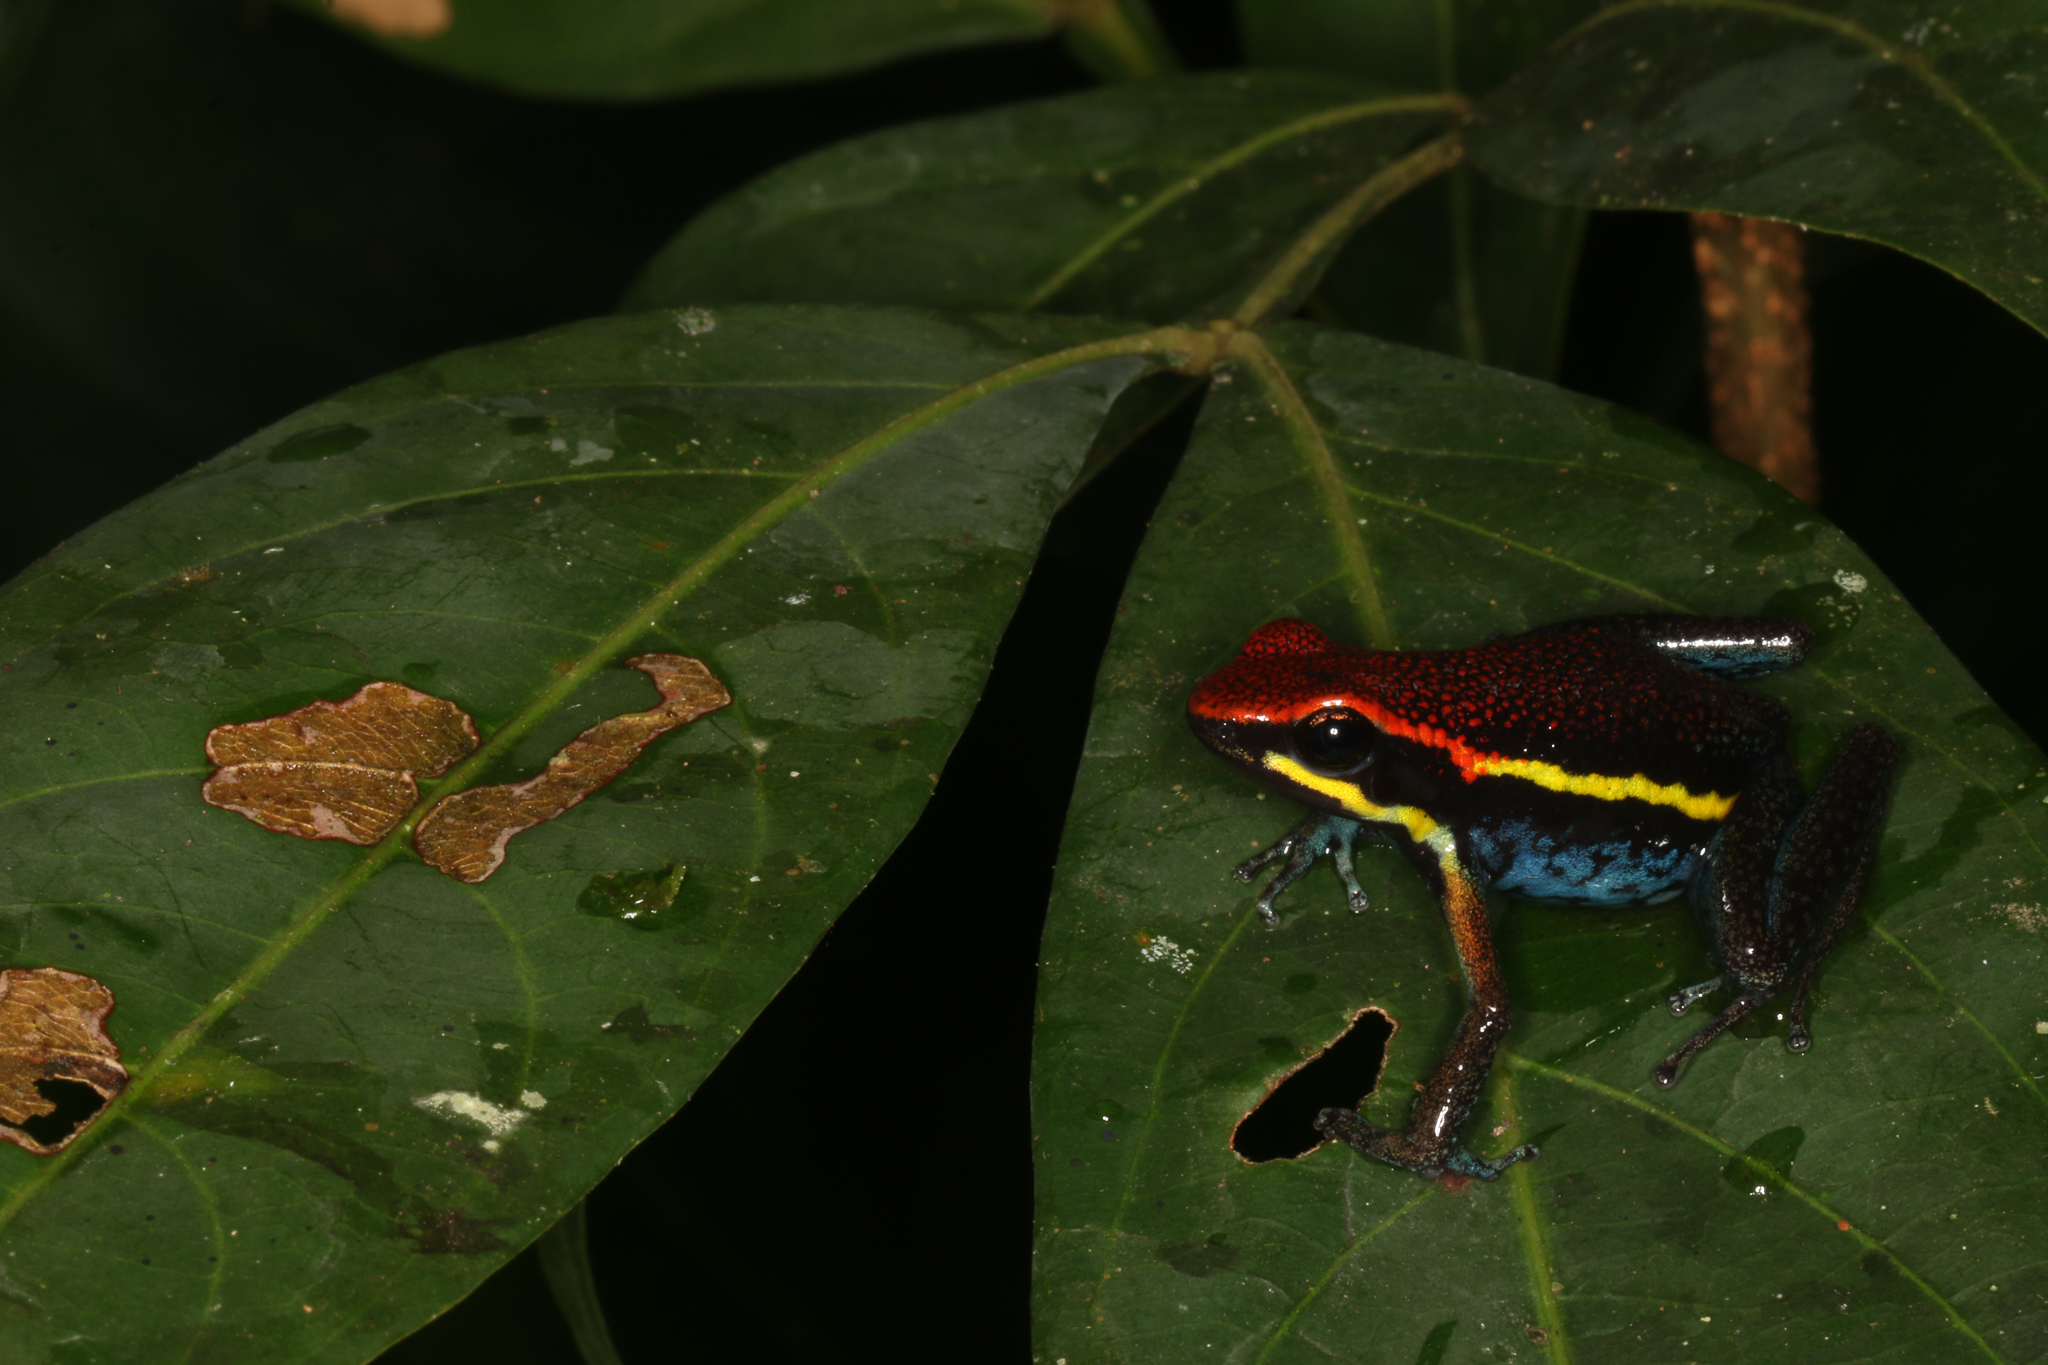 Ameerega macero, an Amazonian species of poison dart frog common in the area, found near Camp 1. Photo by Juan C. Chaparro